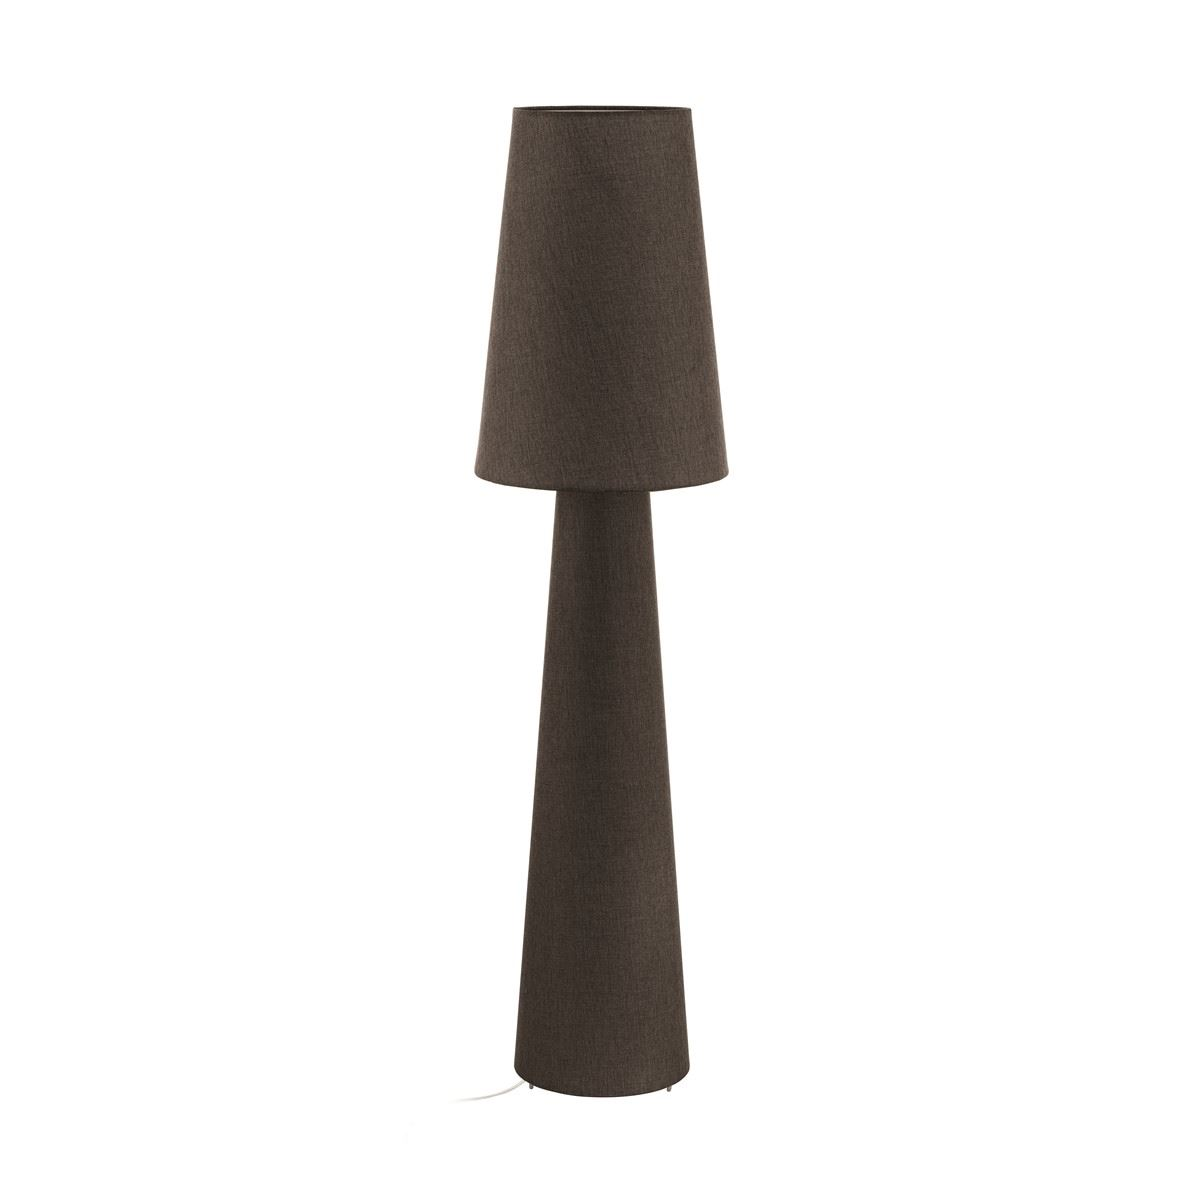 Brown Table Lamp With Fabric Lamp Base & Shade